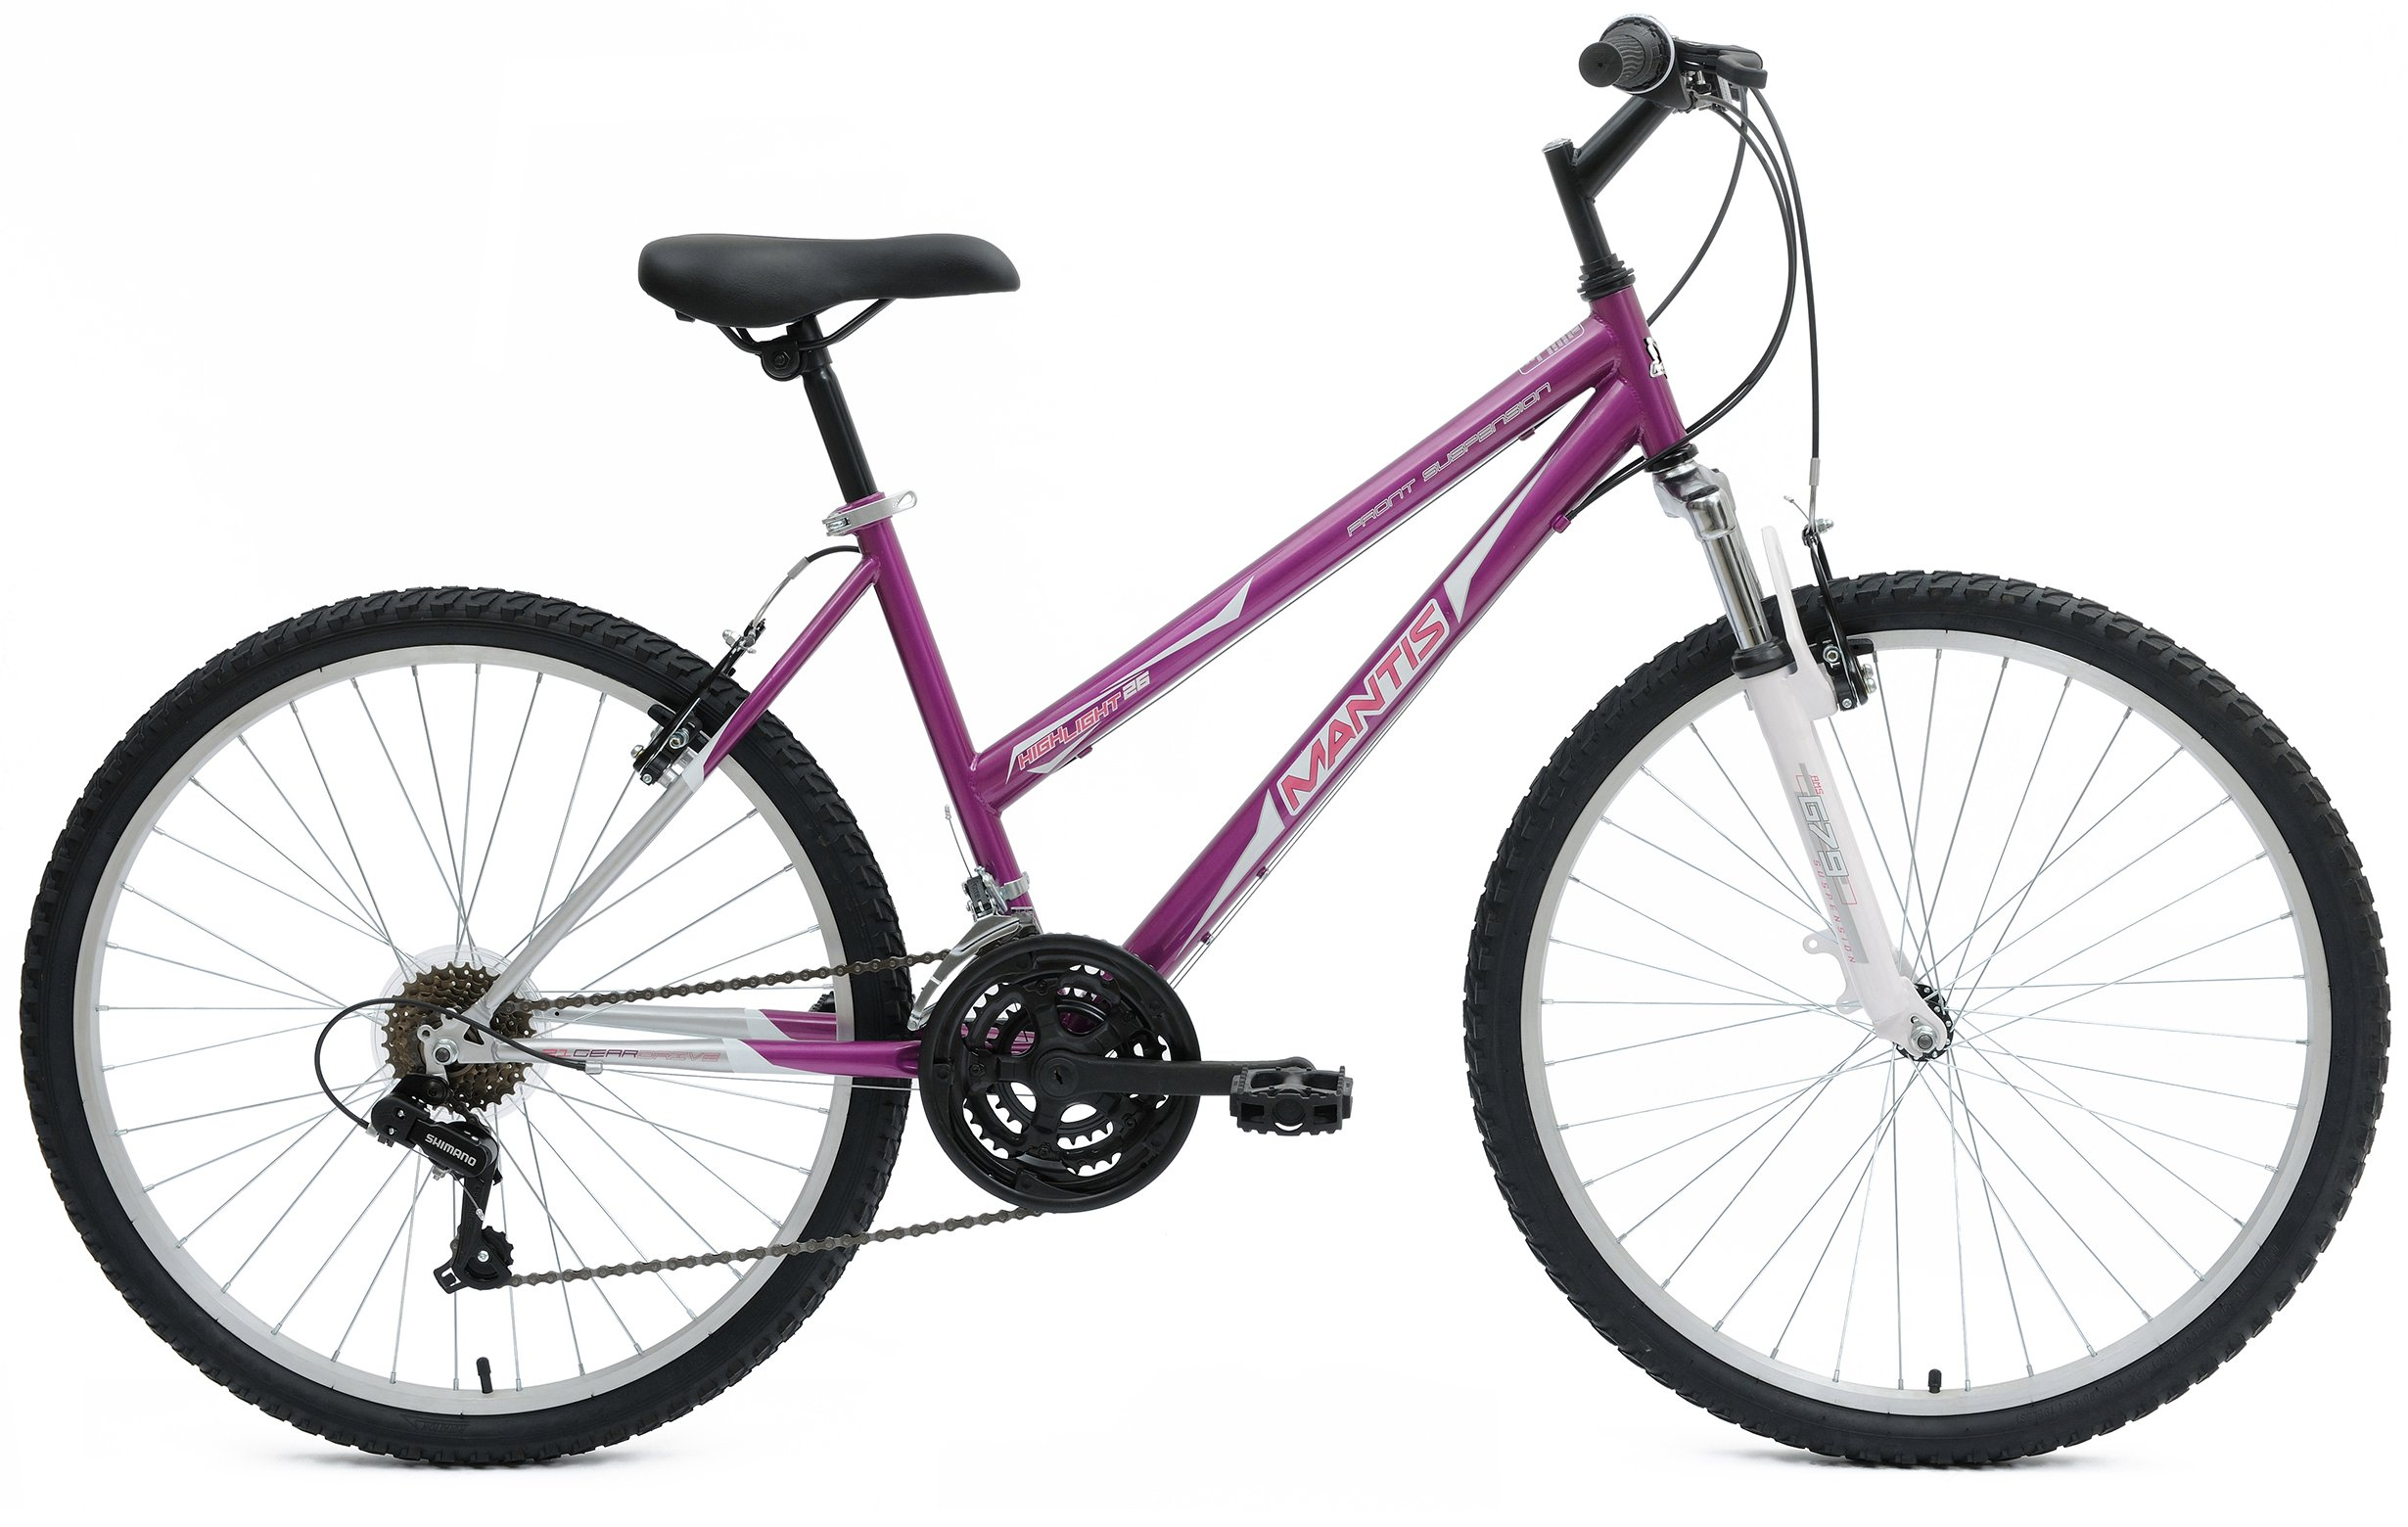 Mantis Women's Highlight 26 L MTB Hardtail 21 Speed Bicycle